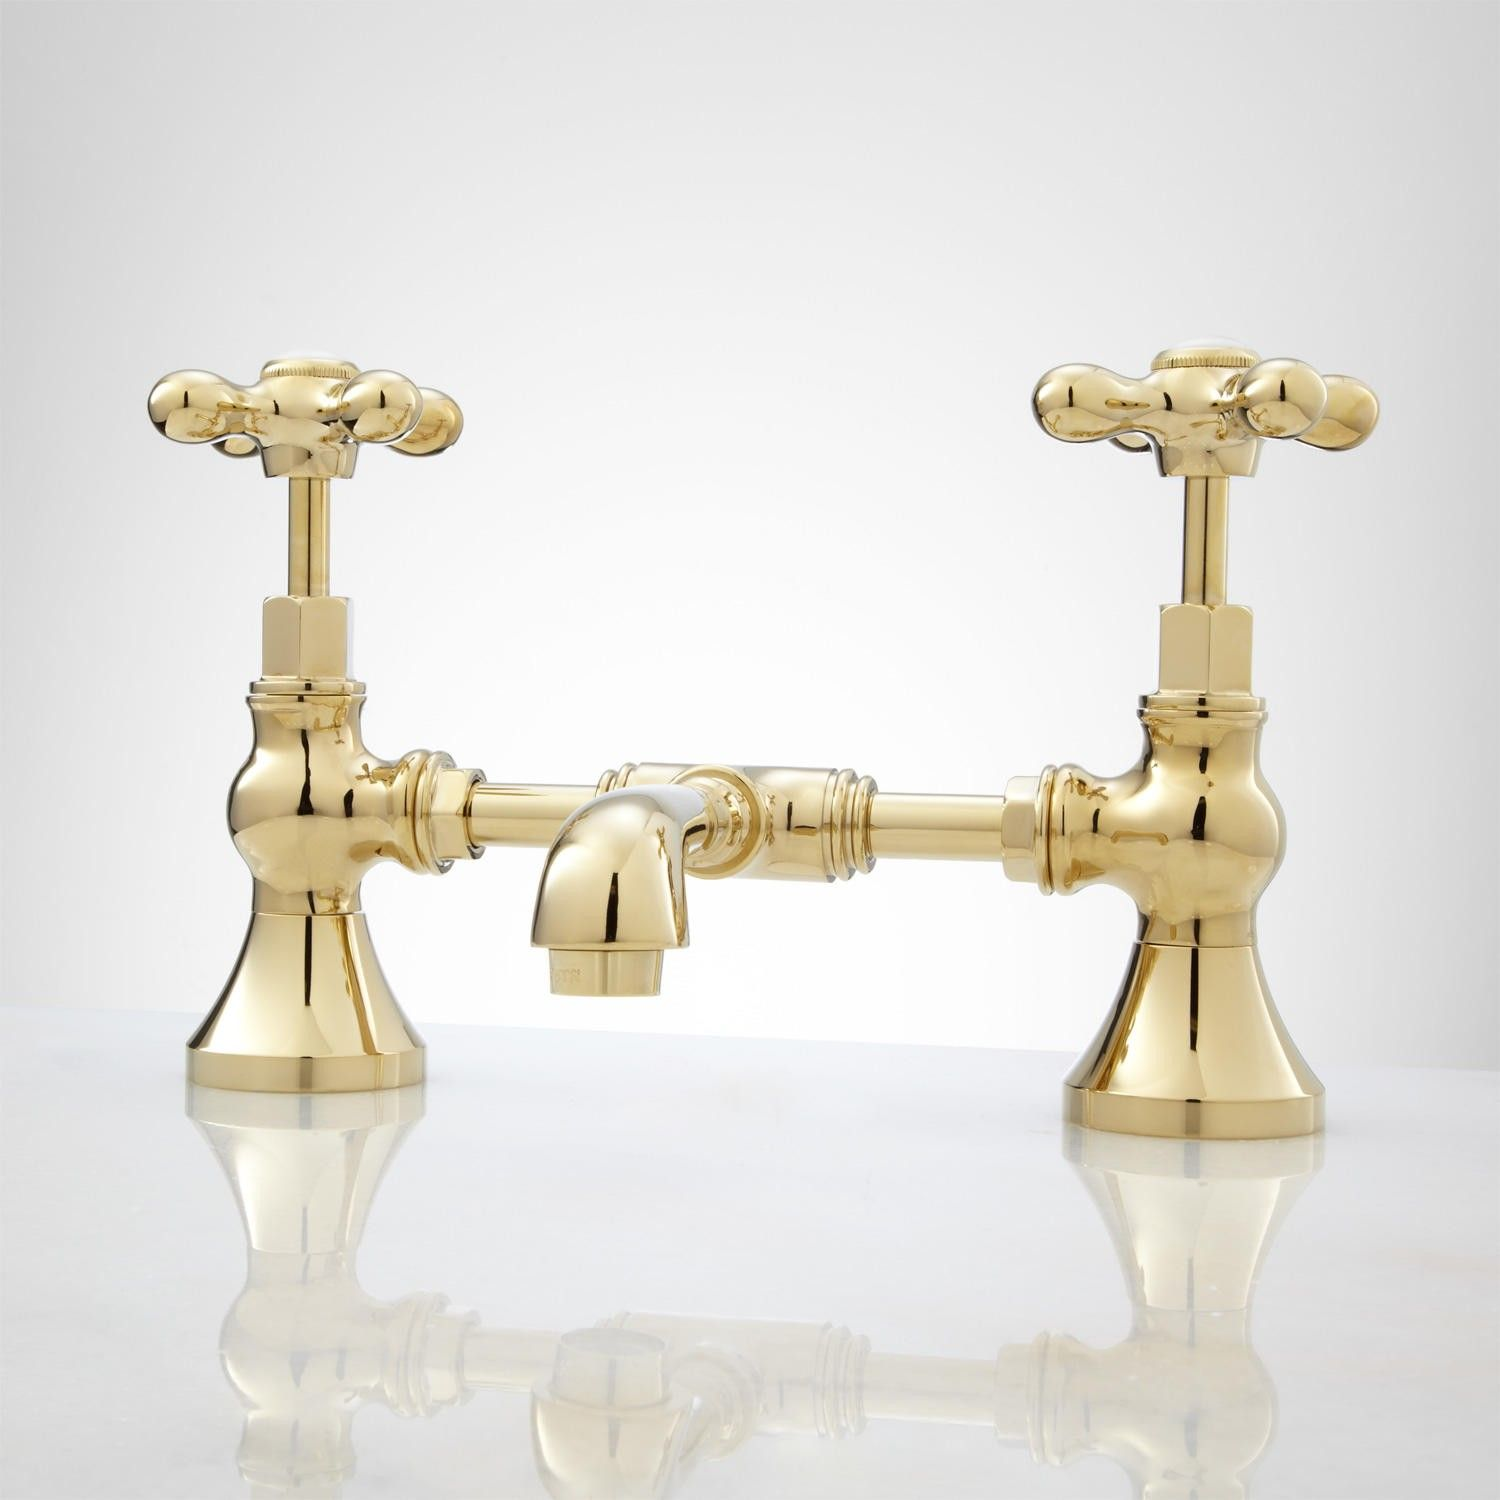 Monroe Bridge Bathroom Faucet - Cross Handles | beachbaths ... on tub faucets, small bathroom faucets, black nickel faucets, bathroom faucet parts, bath faucets, cool bathroom faucets, modern bathroom faucets, bathroom basin sinks, bronze bathroom faucets, bathroom water faucets, shower faucets, bathroom mirrors, basin faucets, bathroom vanity faucets, bathroom sink drains, bathroom vanities, bathroom sink sinks, kohler bathroom faucets, bathroom sink ideas, grohe bathroom faucets,